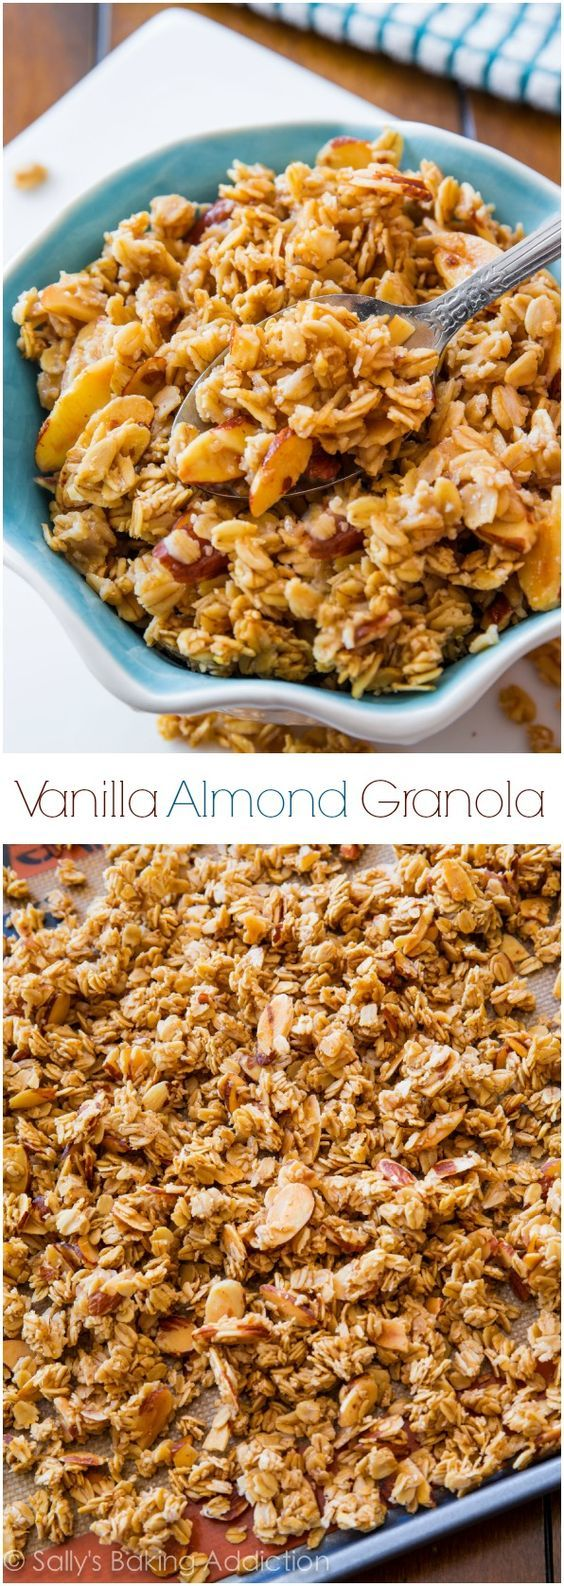 Ditch the store-bought... healthy homemade granola is easy! Make this sweet, sticky, and crunchy granola that is exploding with vanilla and almond flavors!